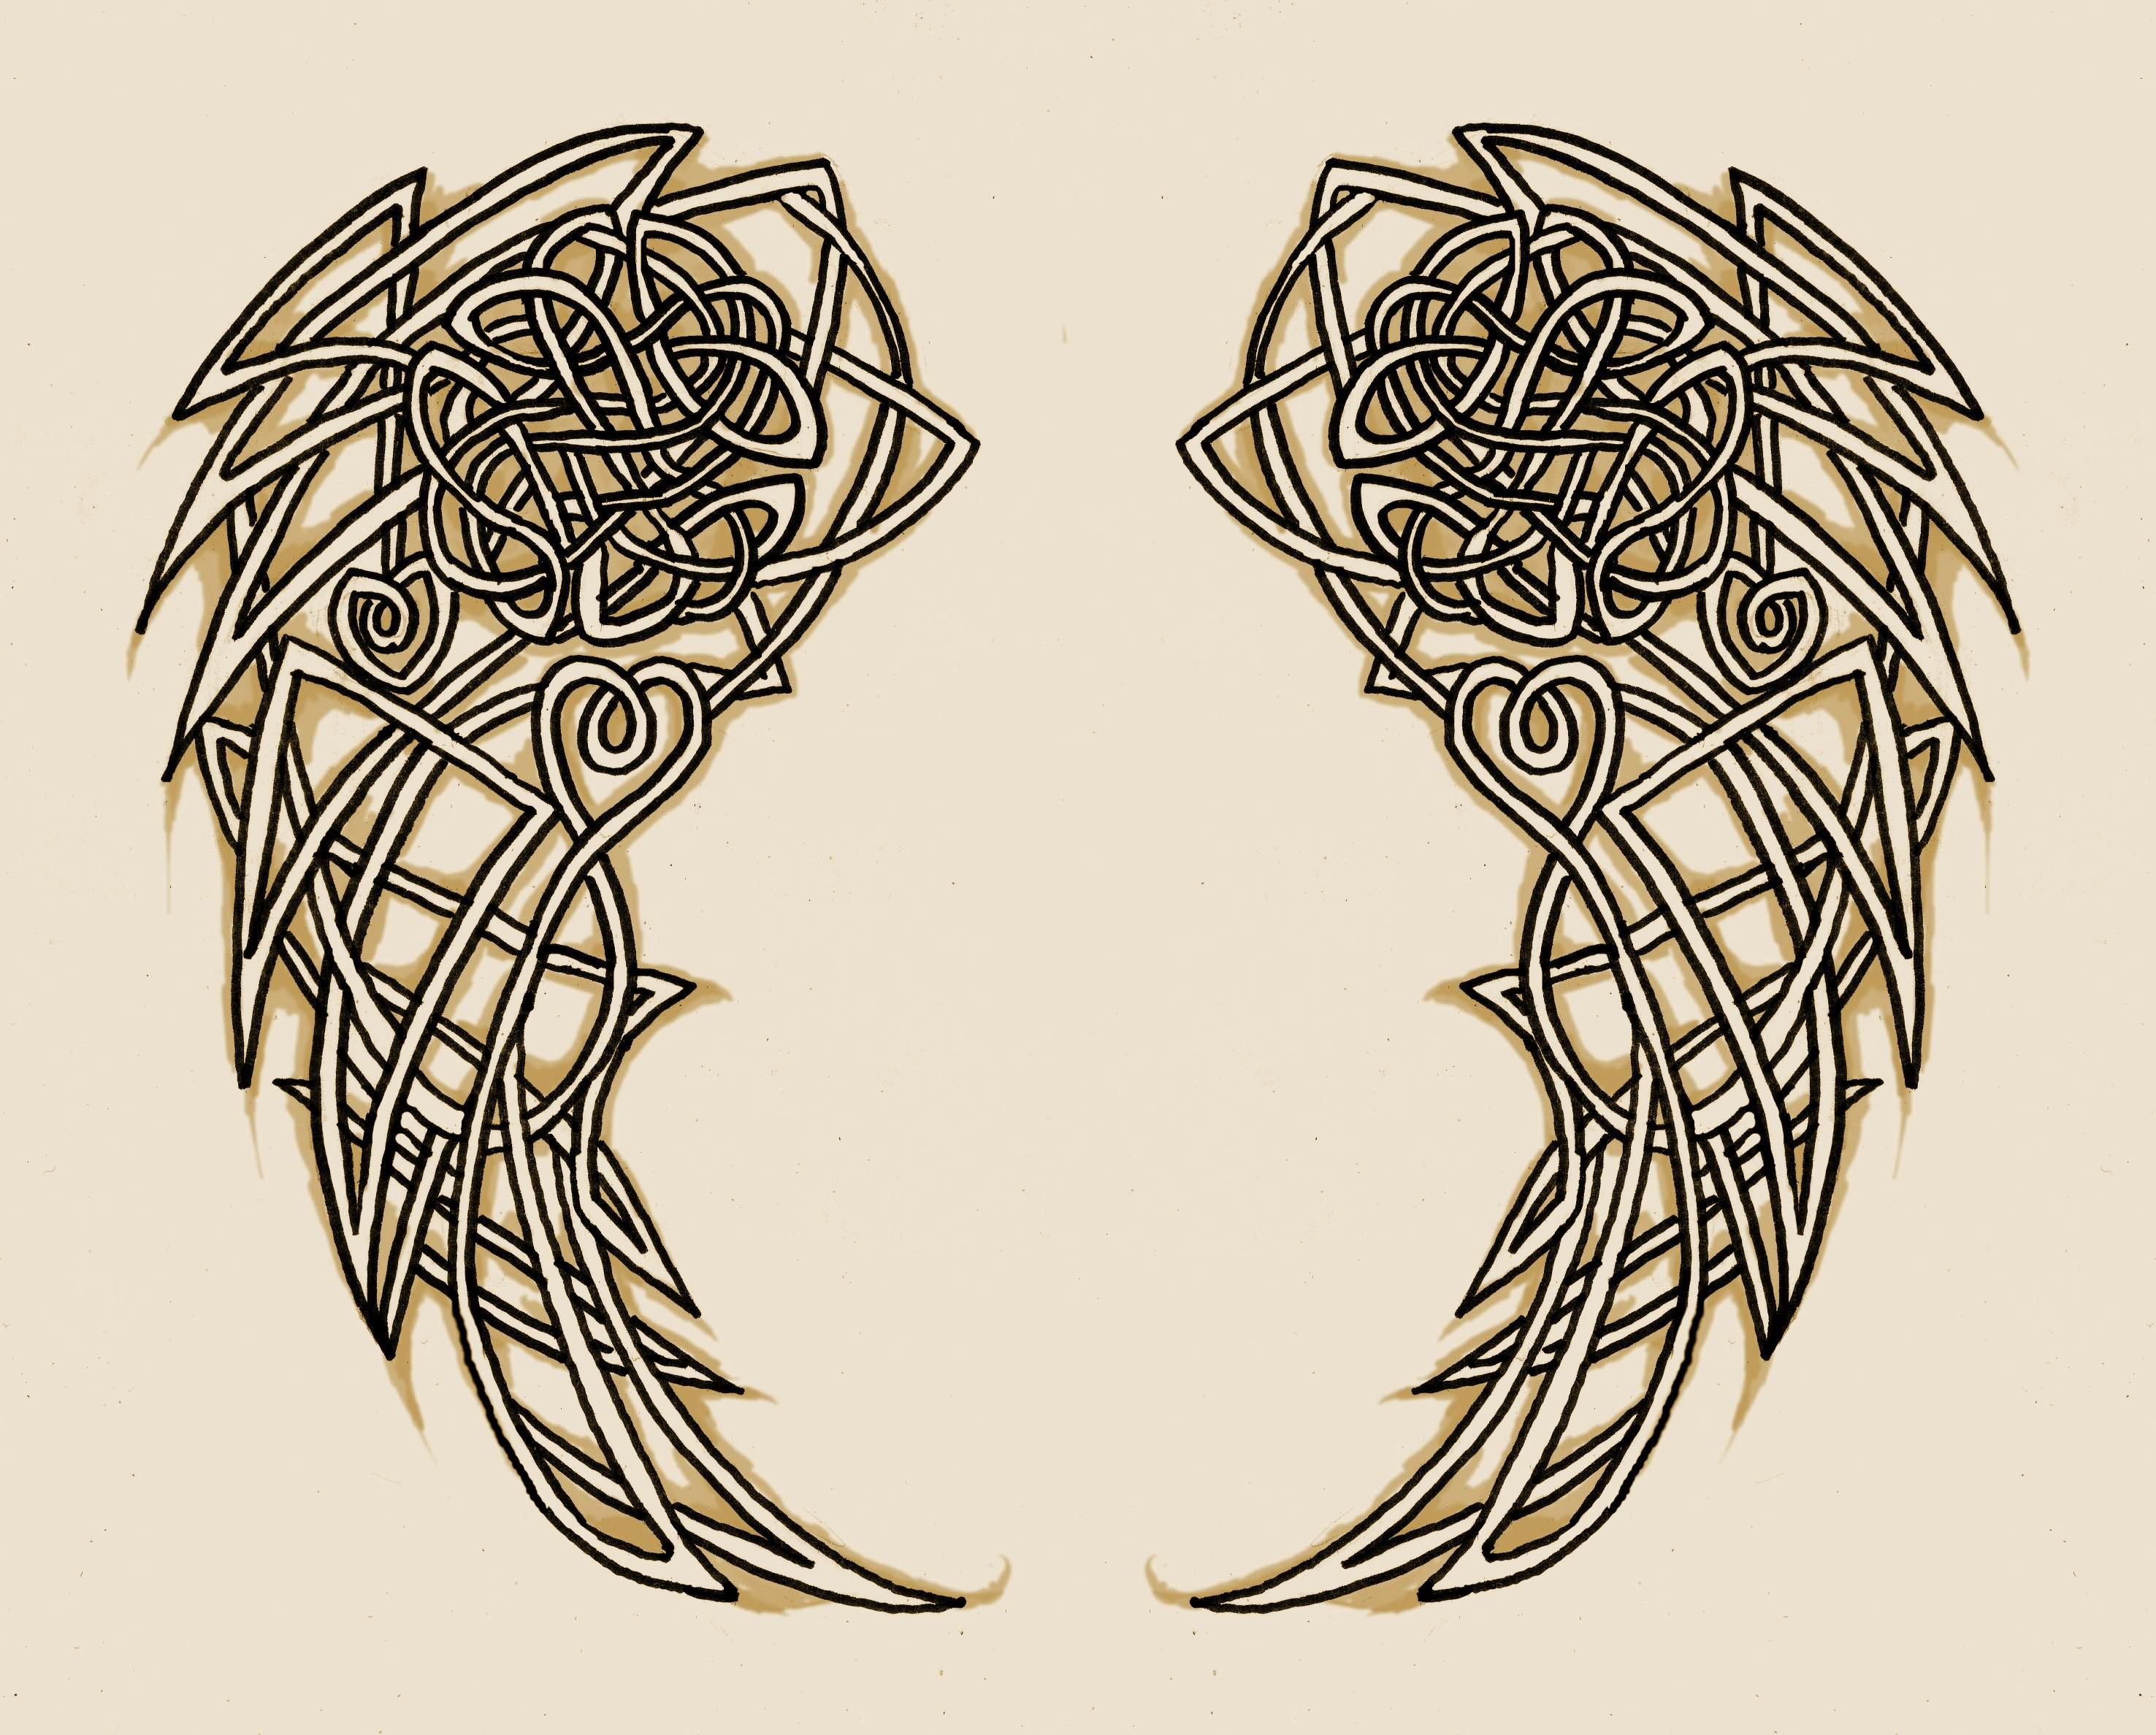 Wing tattoo design - Angel Wings Drawings For Tattoos Celtic Wings Tattoo Design Similar Posts